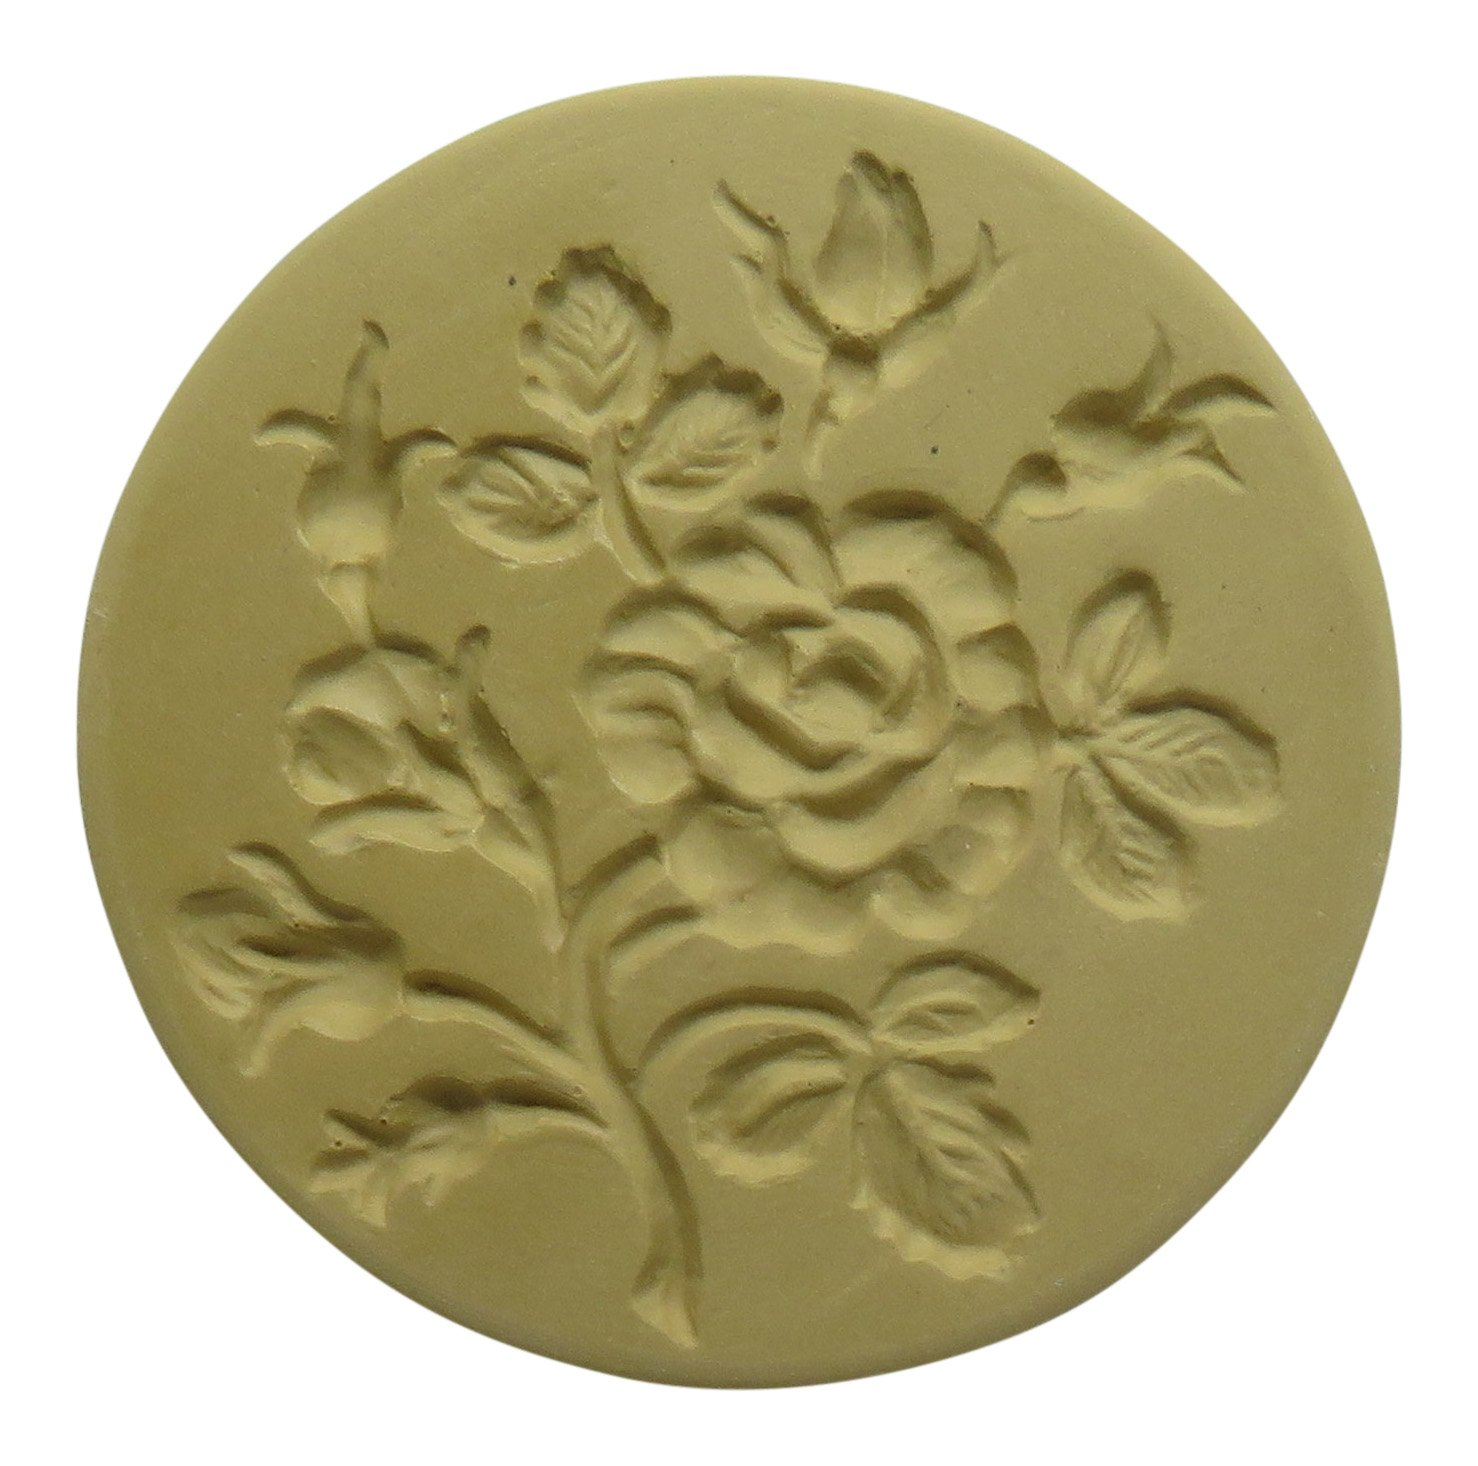 Brown Bag Moss Ross Flower Handled Ceramic Cookie Stamp or Press NA